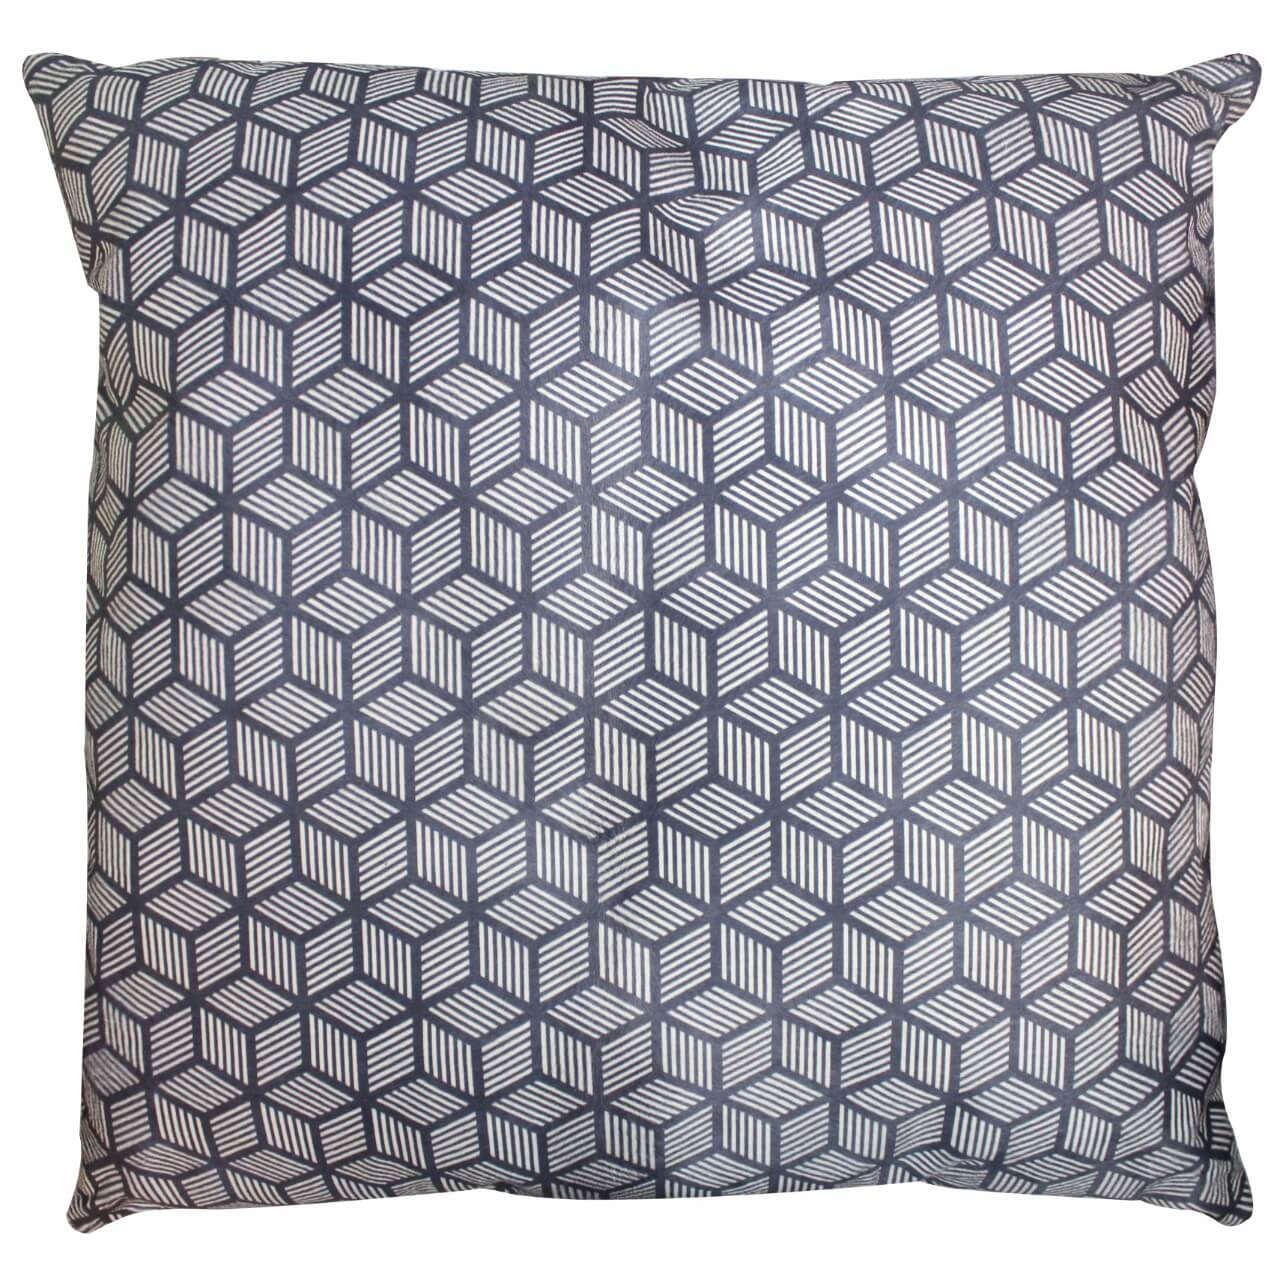 Cavallino Pillow-50x50cm-(RENK_Cube Strips)-(İSİM_Cube Strips The Squa)-(CPCUB1134BBL5050) - ANVOGG FEEL SHEARLING | ANVOGG